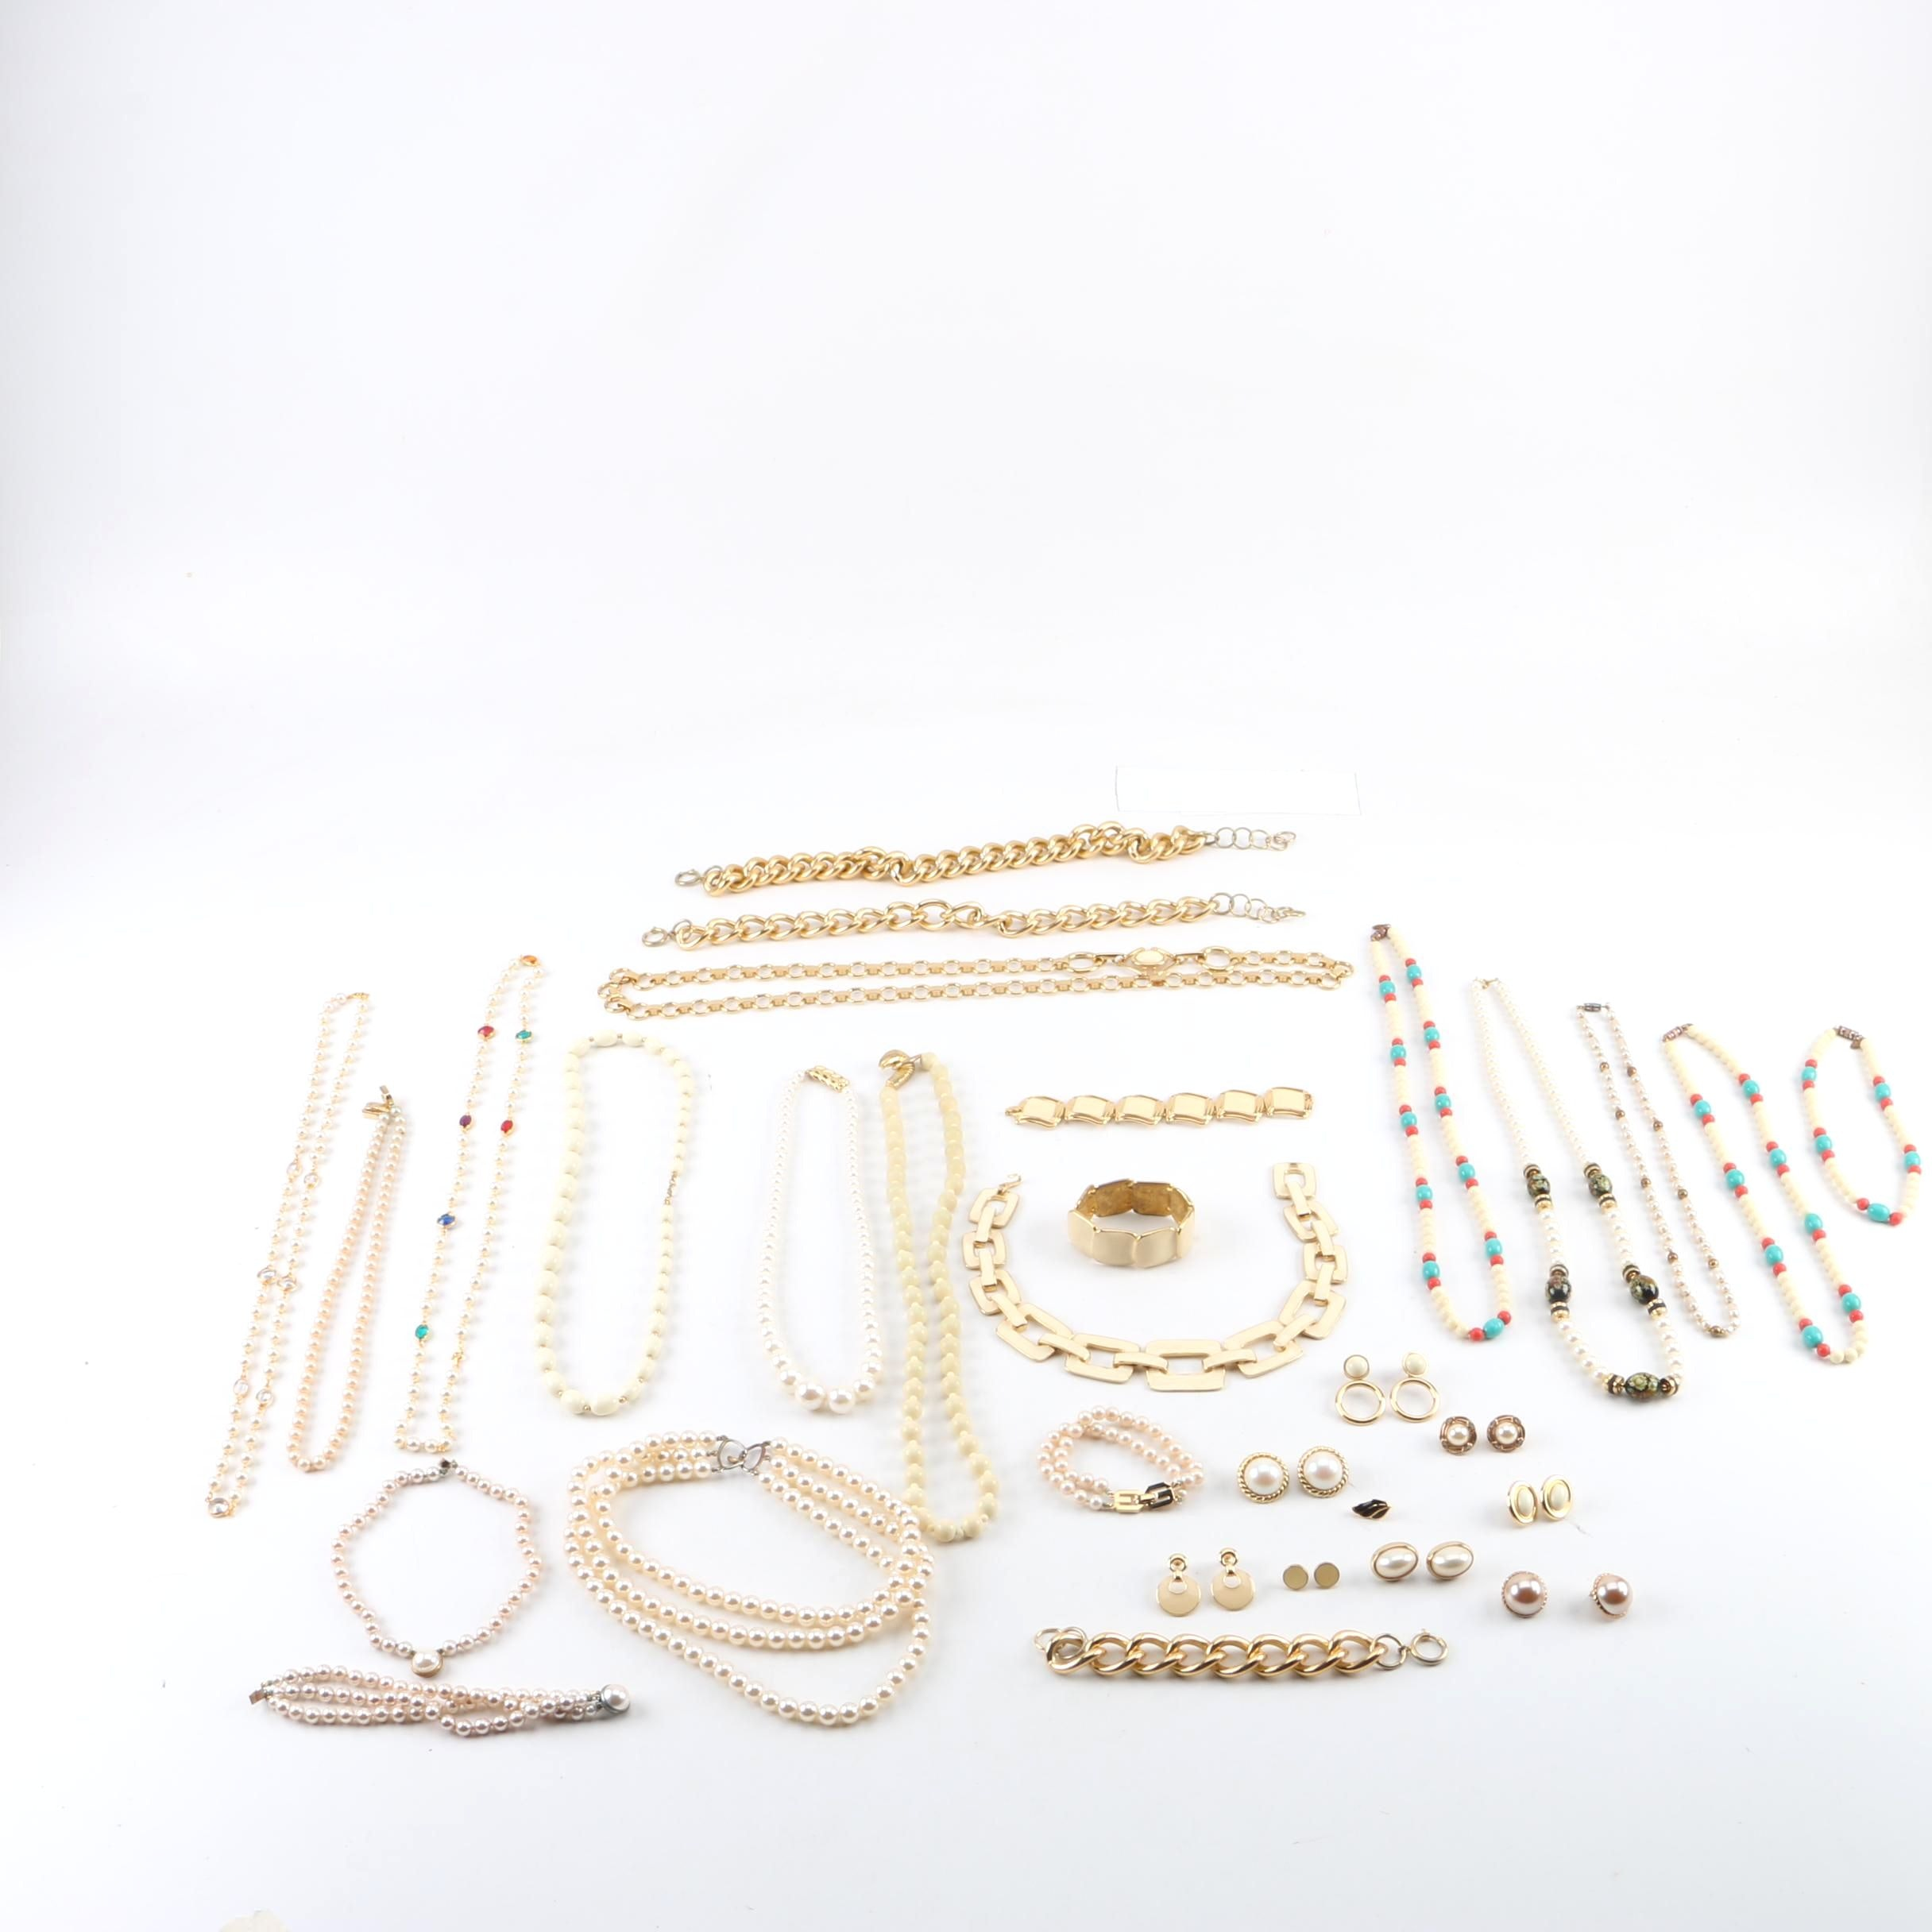 Assorted Les Bernard and Givenchy Gemstone Costume Jewelry